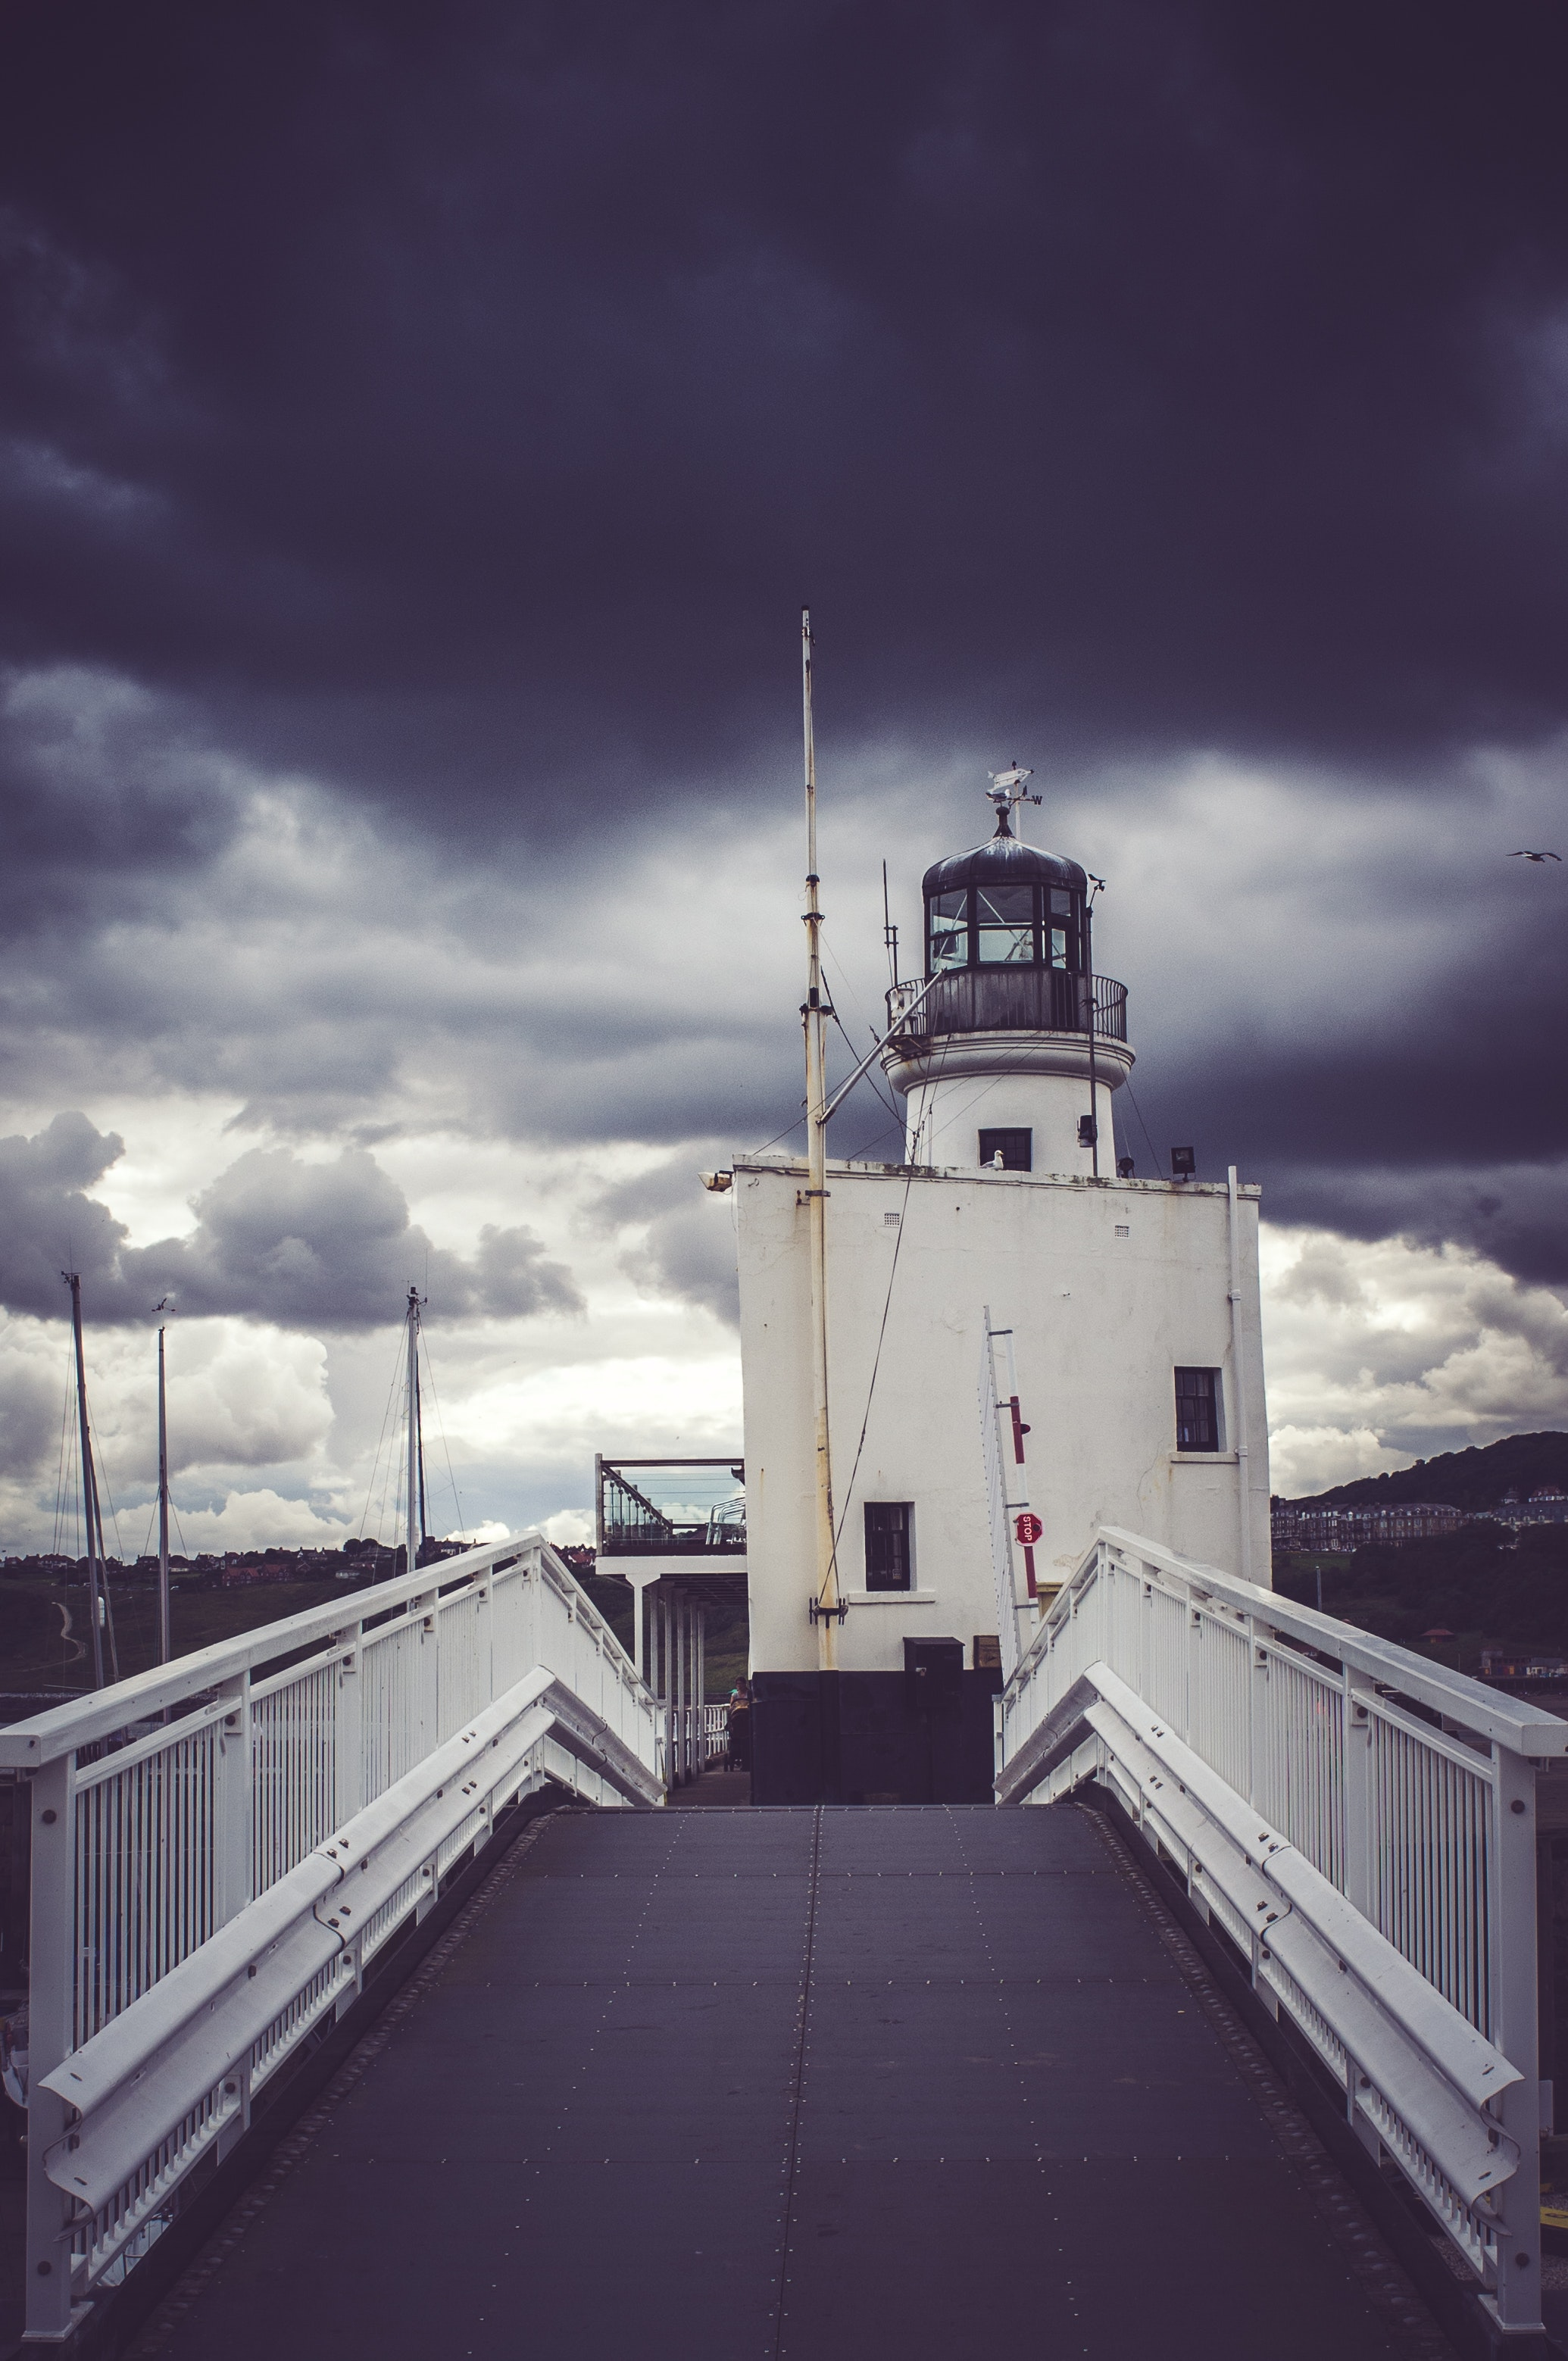 View of cloudy skies on lighthouse photo